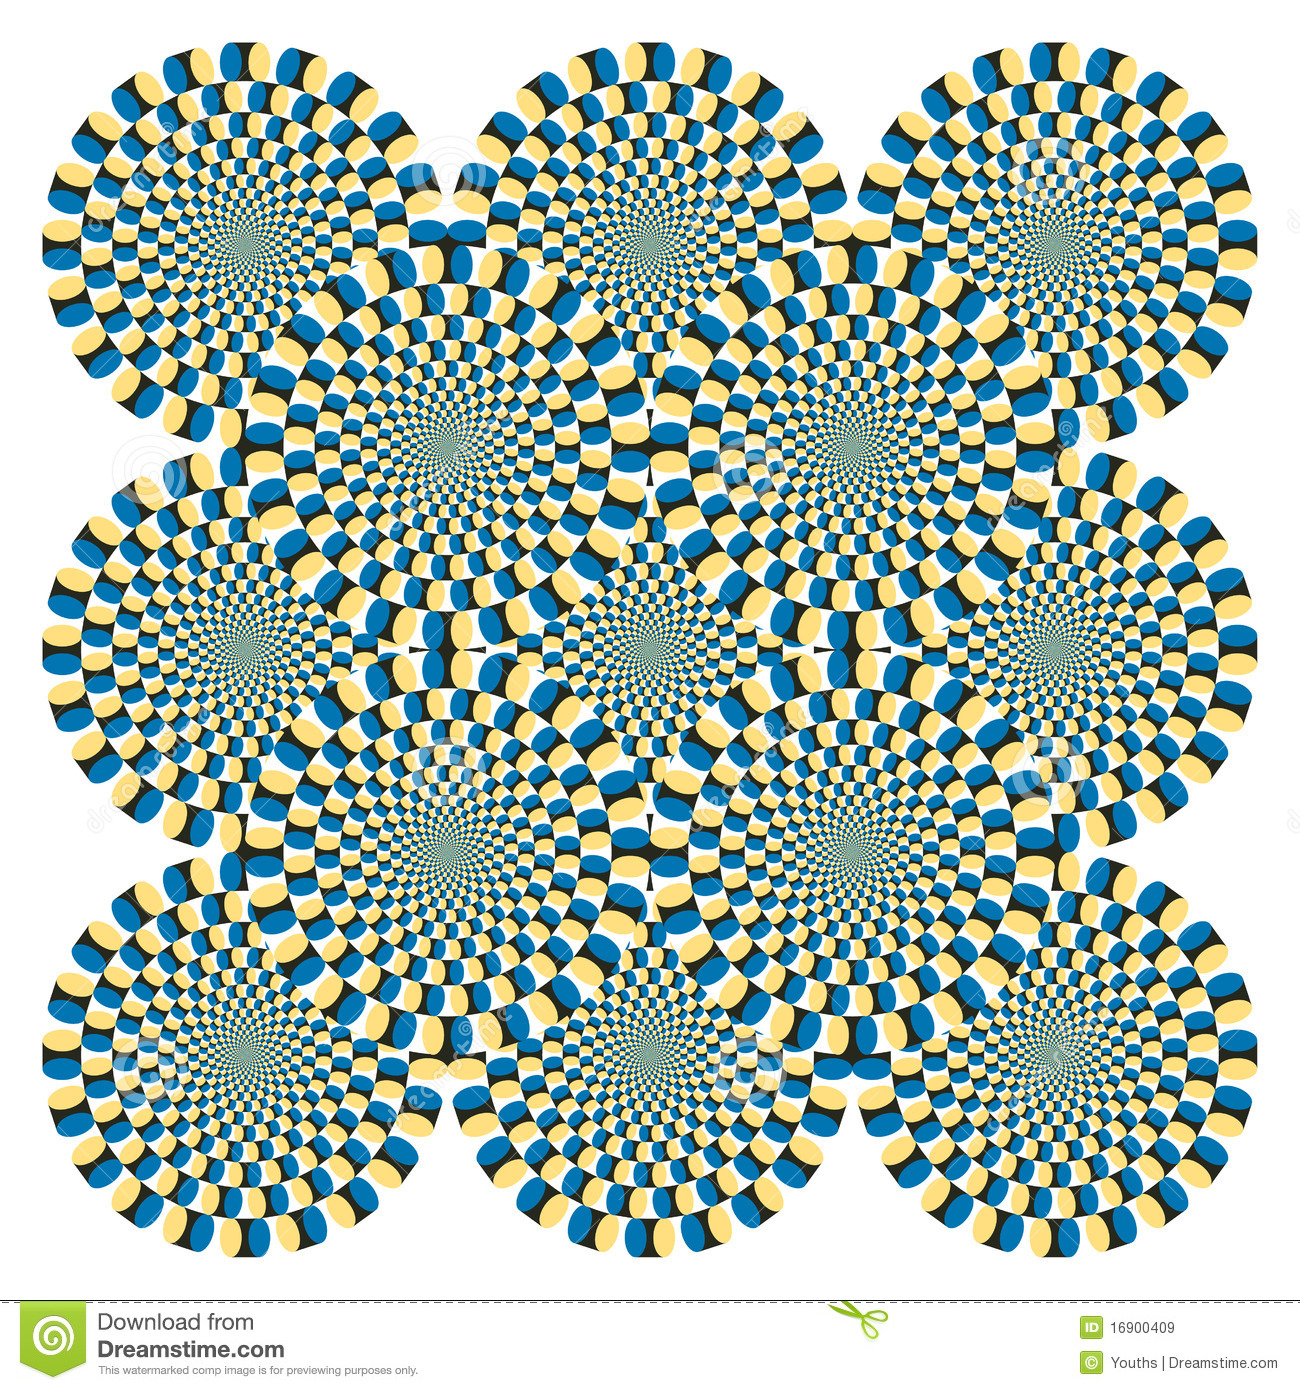 Moving Wallpaper Hd 1080p 3d Optical Illusion Spin Cycle Vector Stock Vector Image